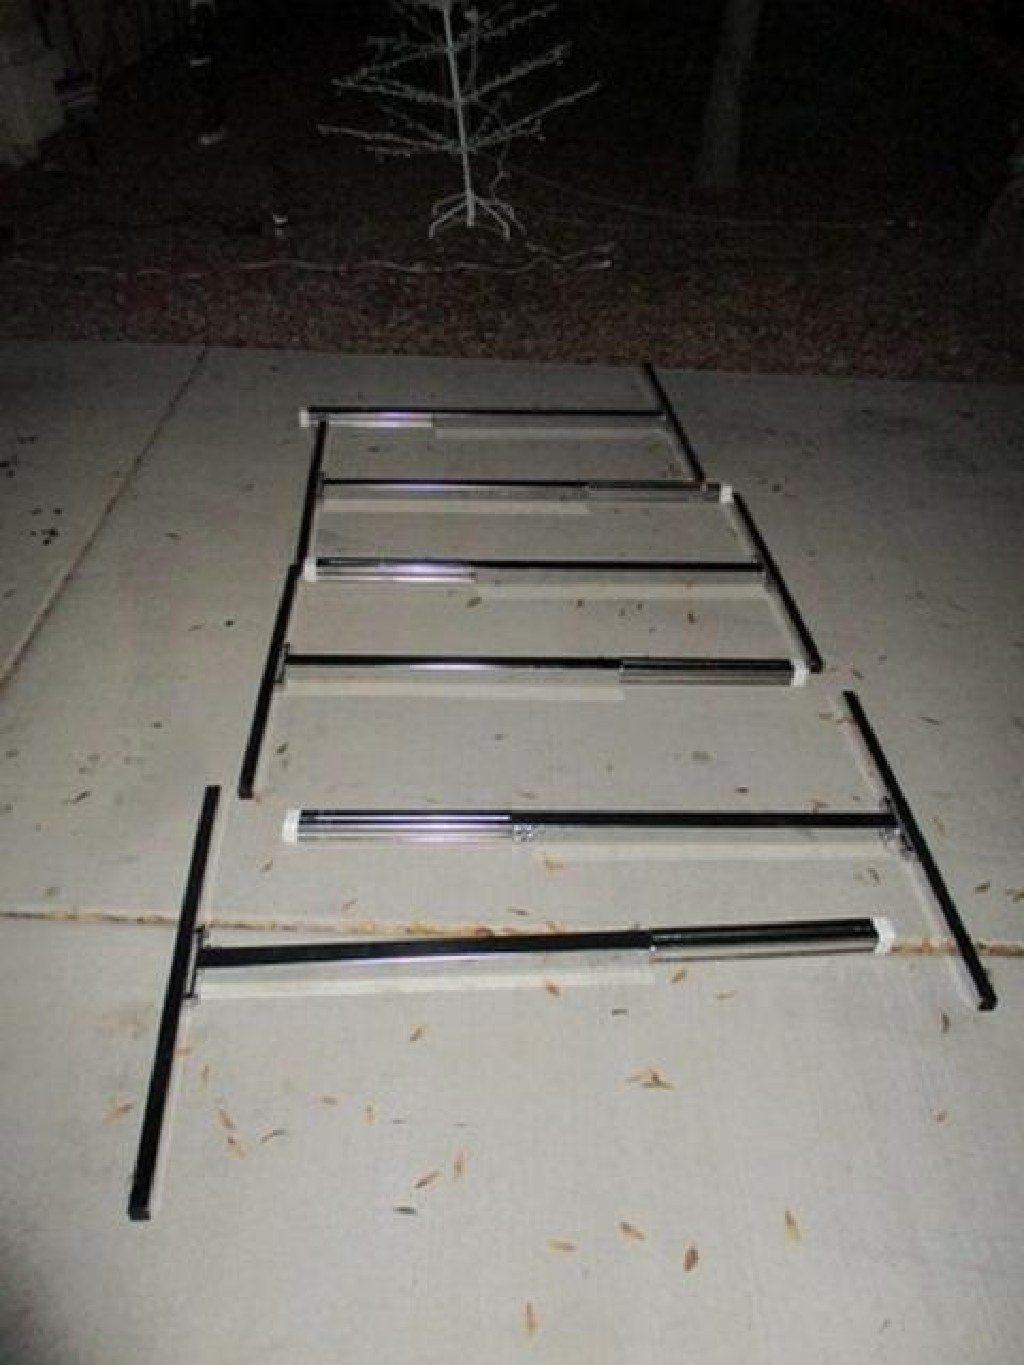 Lot of 4 8' Free Standing Ballet Barres RTR#7011060-01